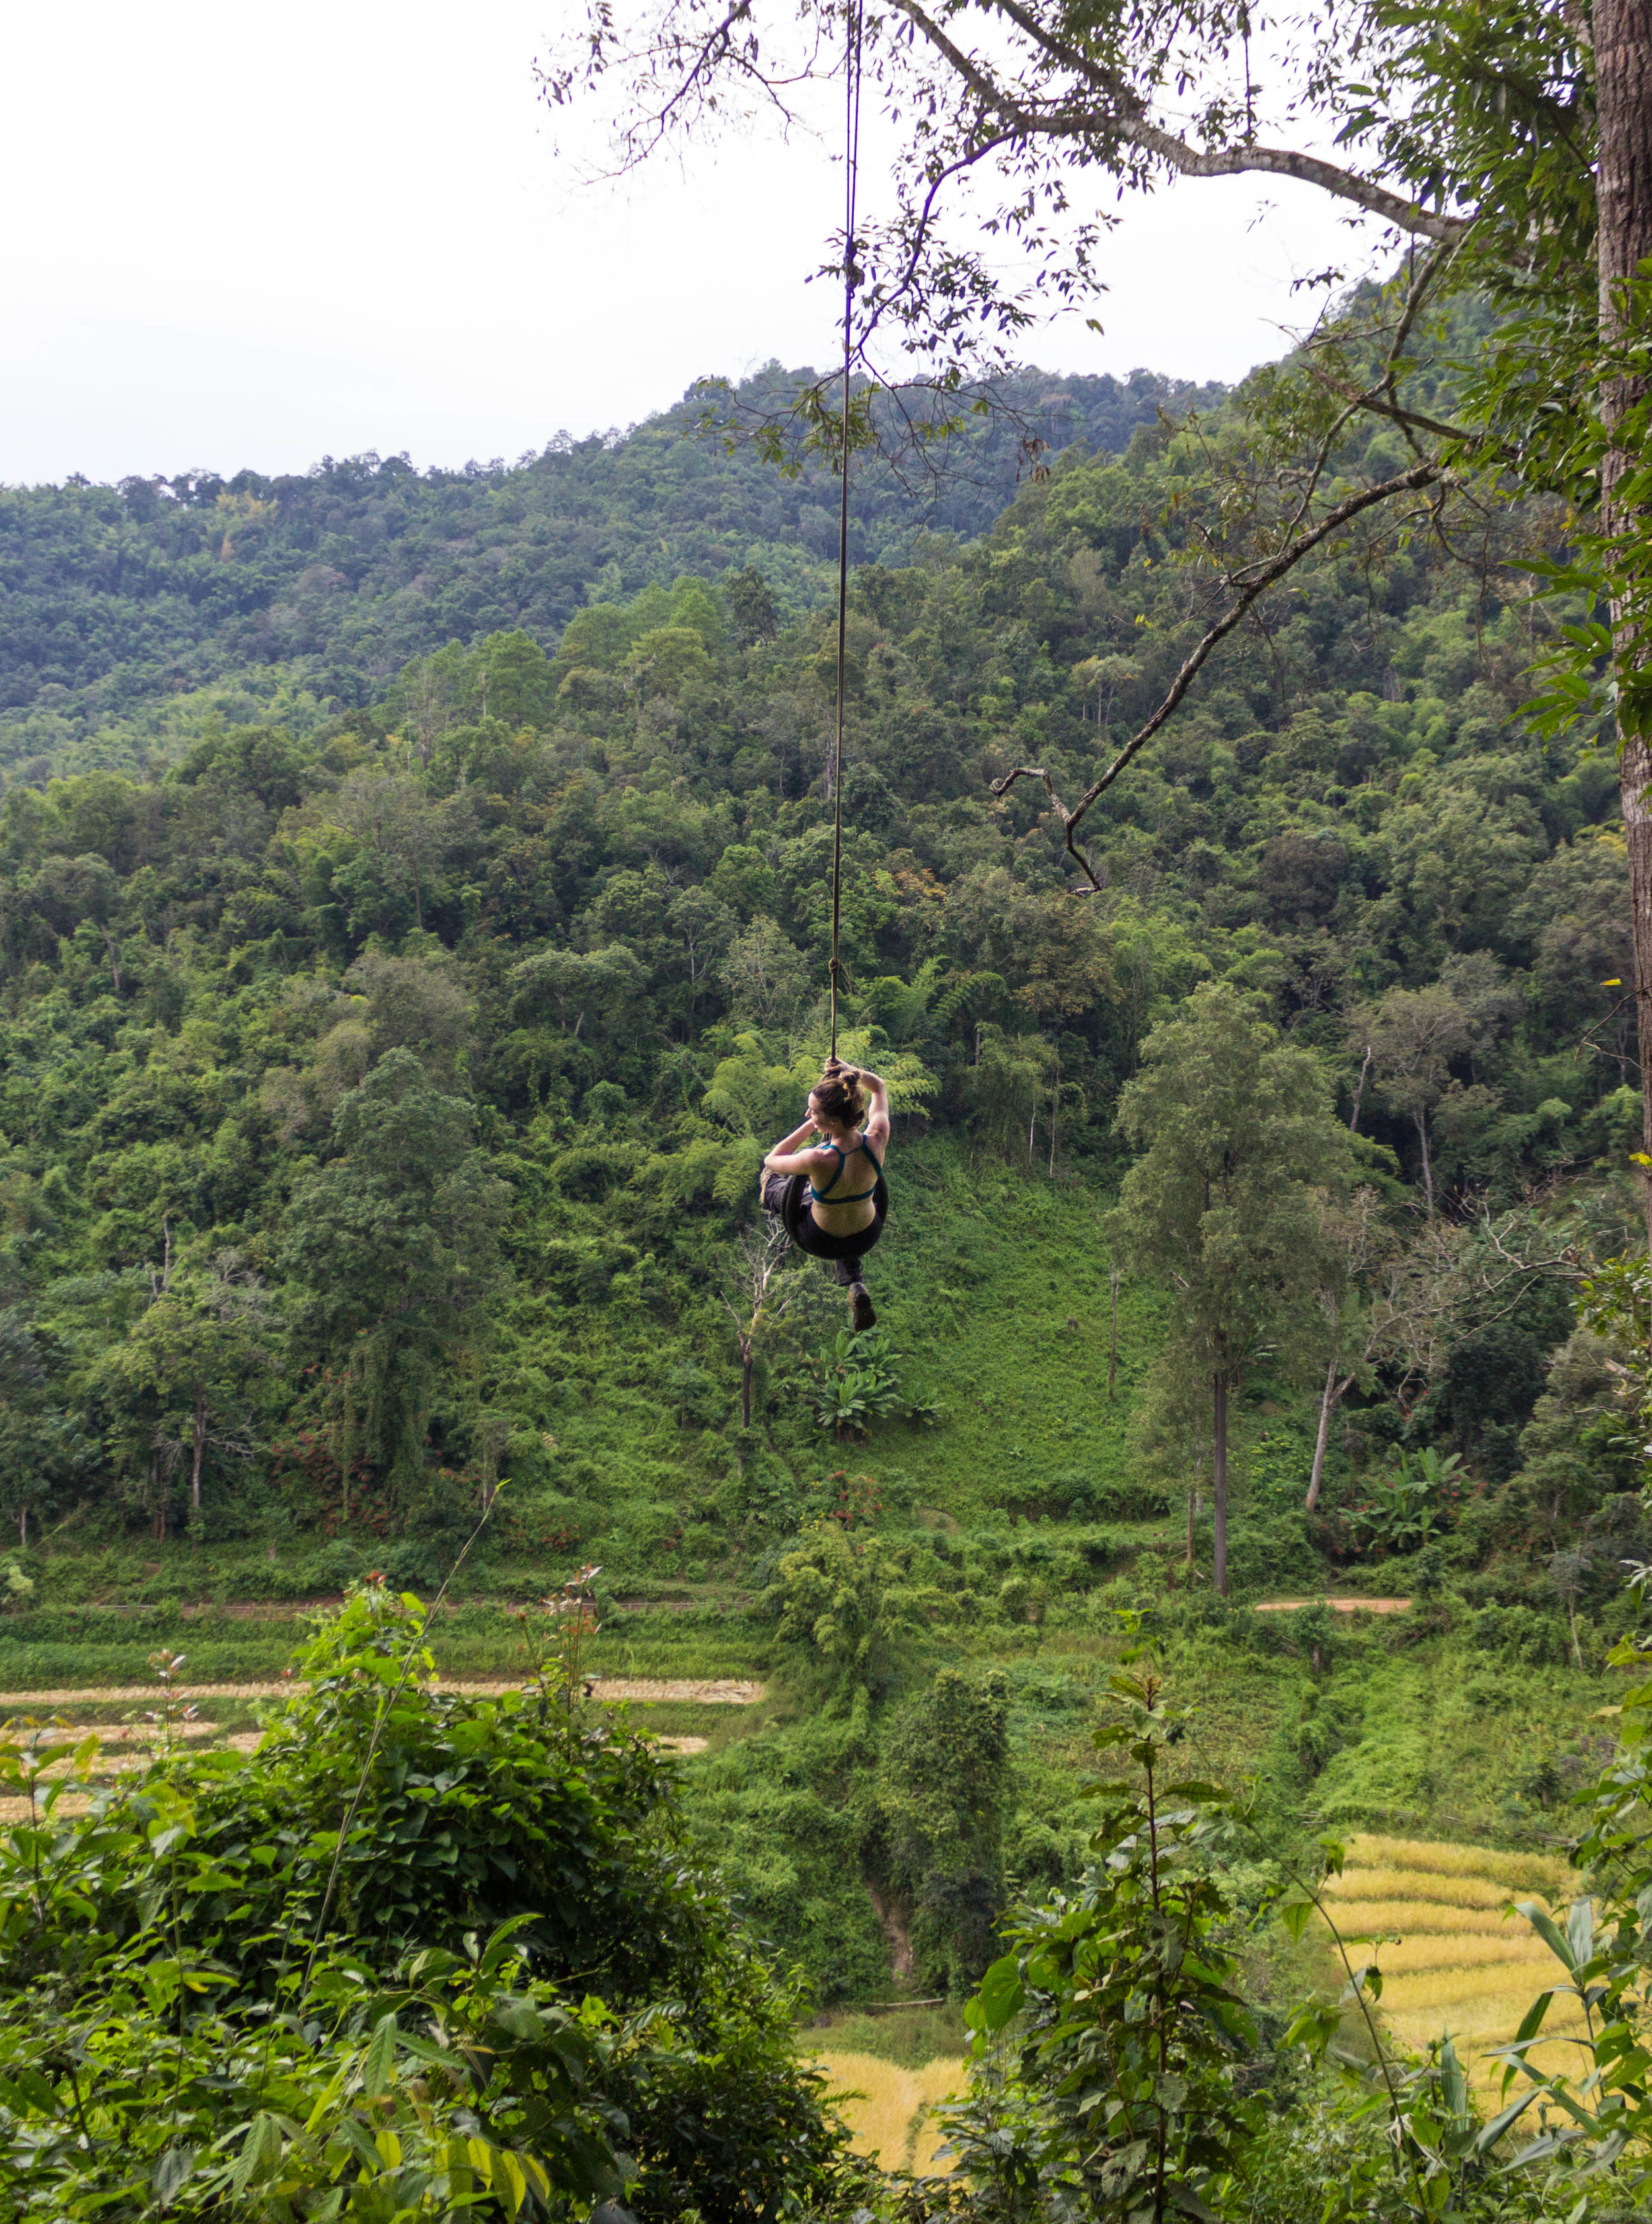 A tire swing hung from a tree that overlooks a small village among rice fields